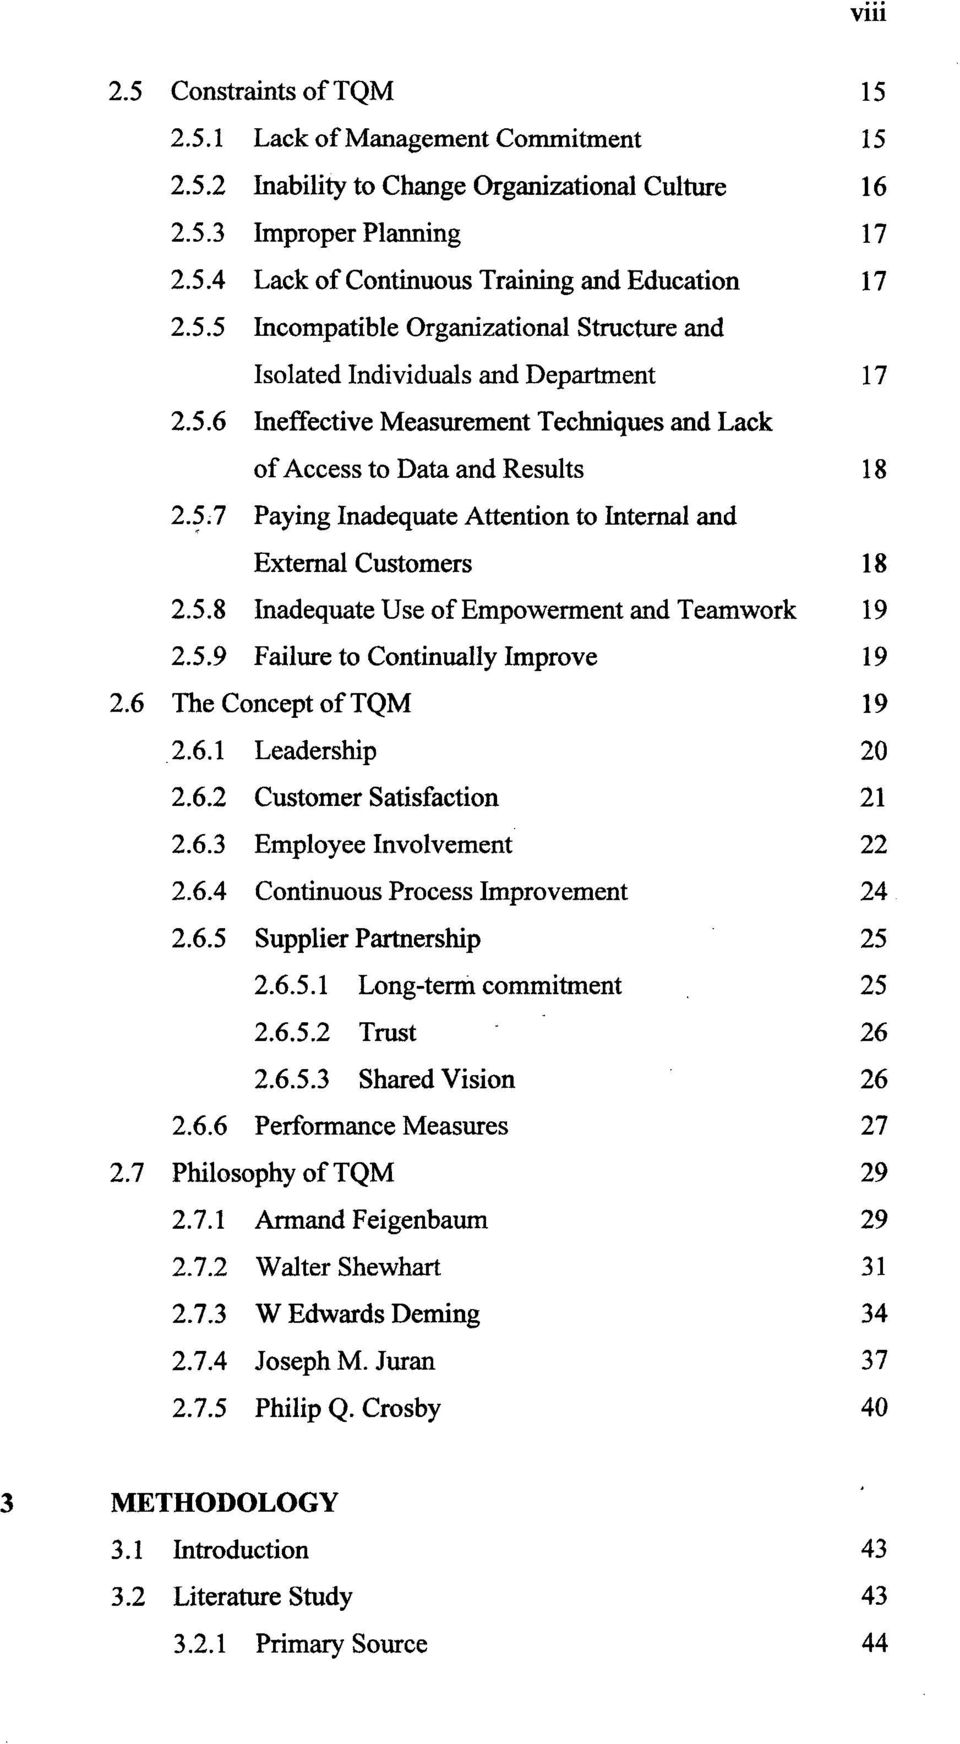 thesis related to total quality management